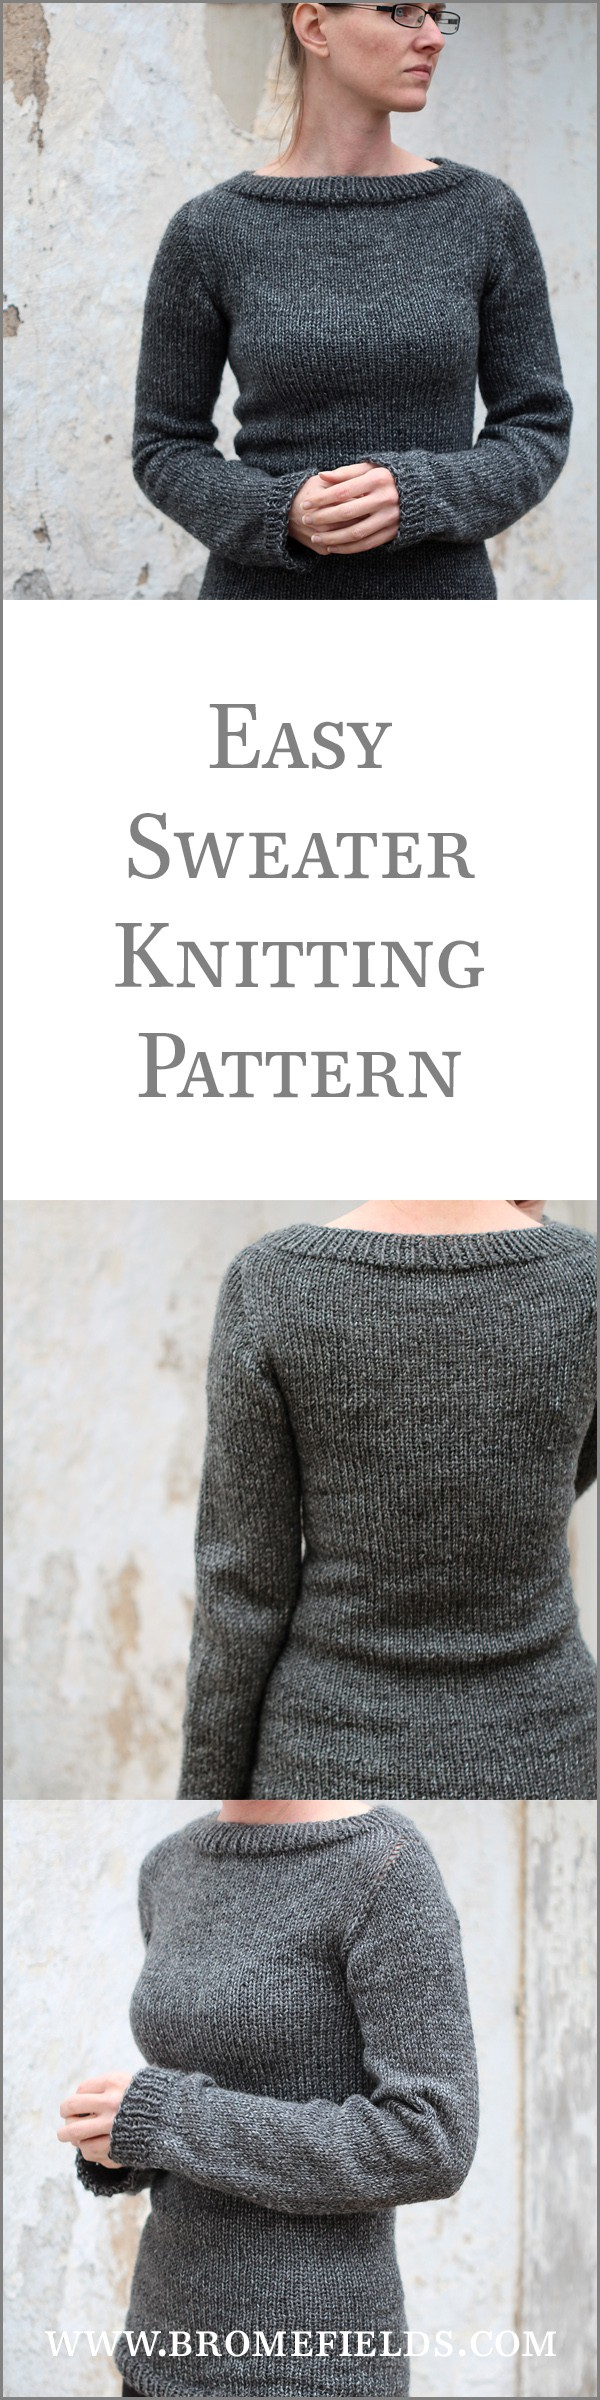 Easy Sweater Knitting Pattern!